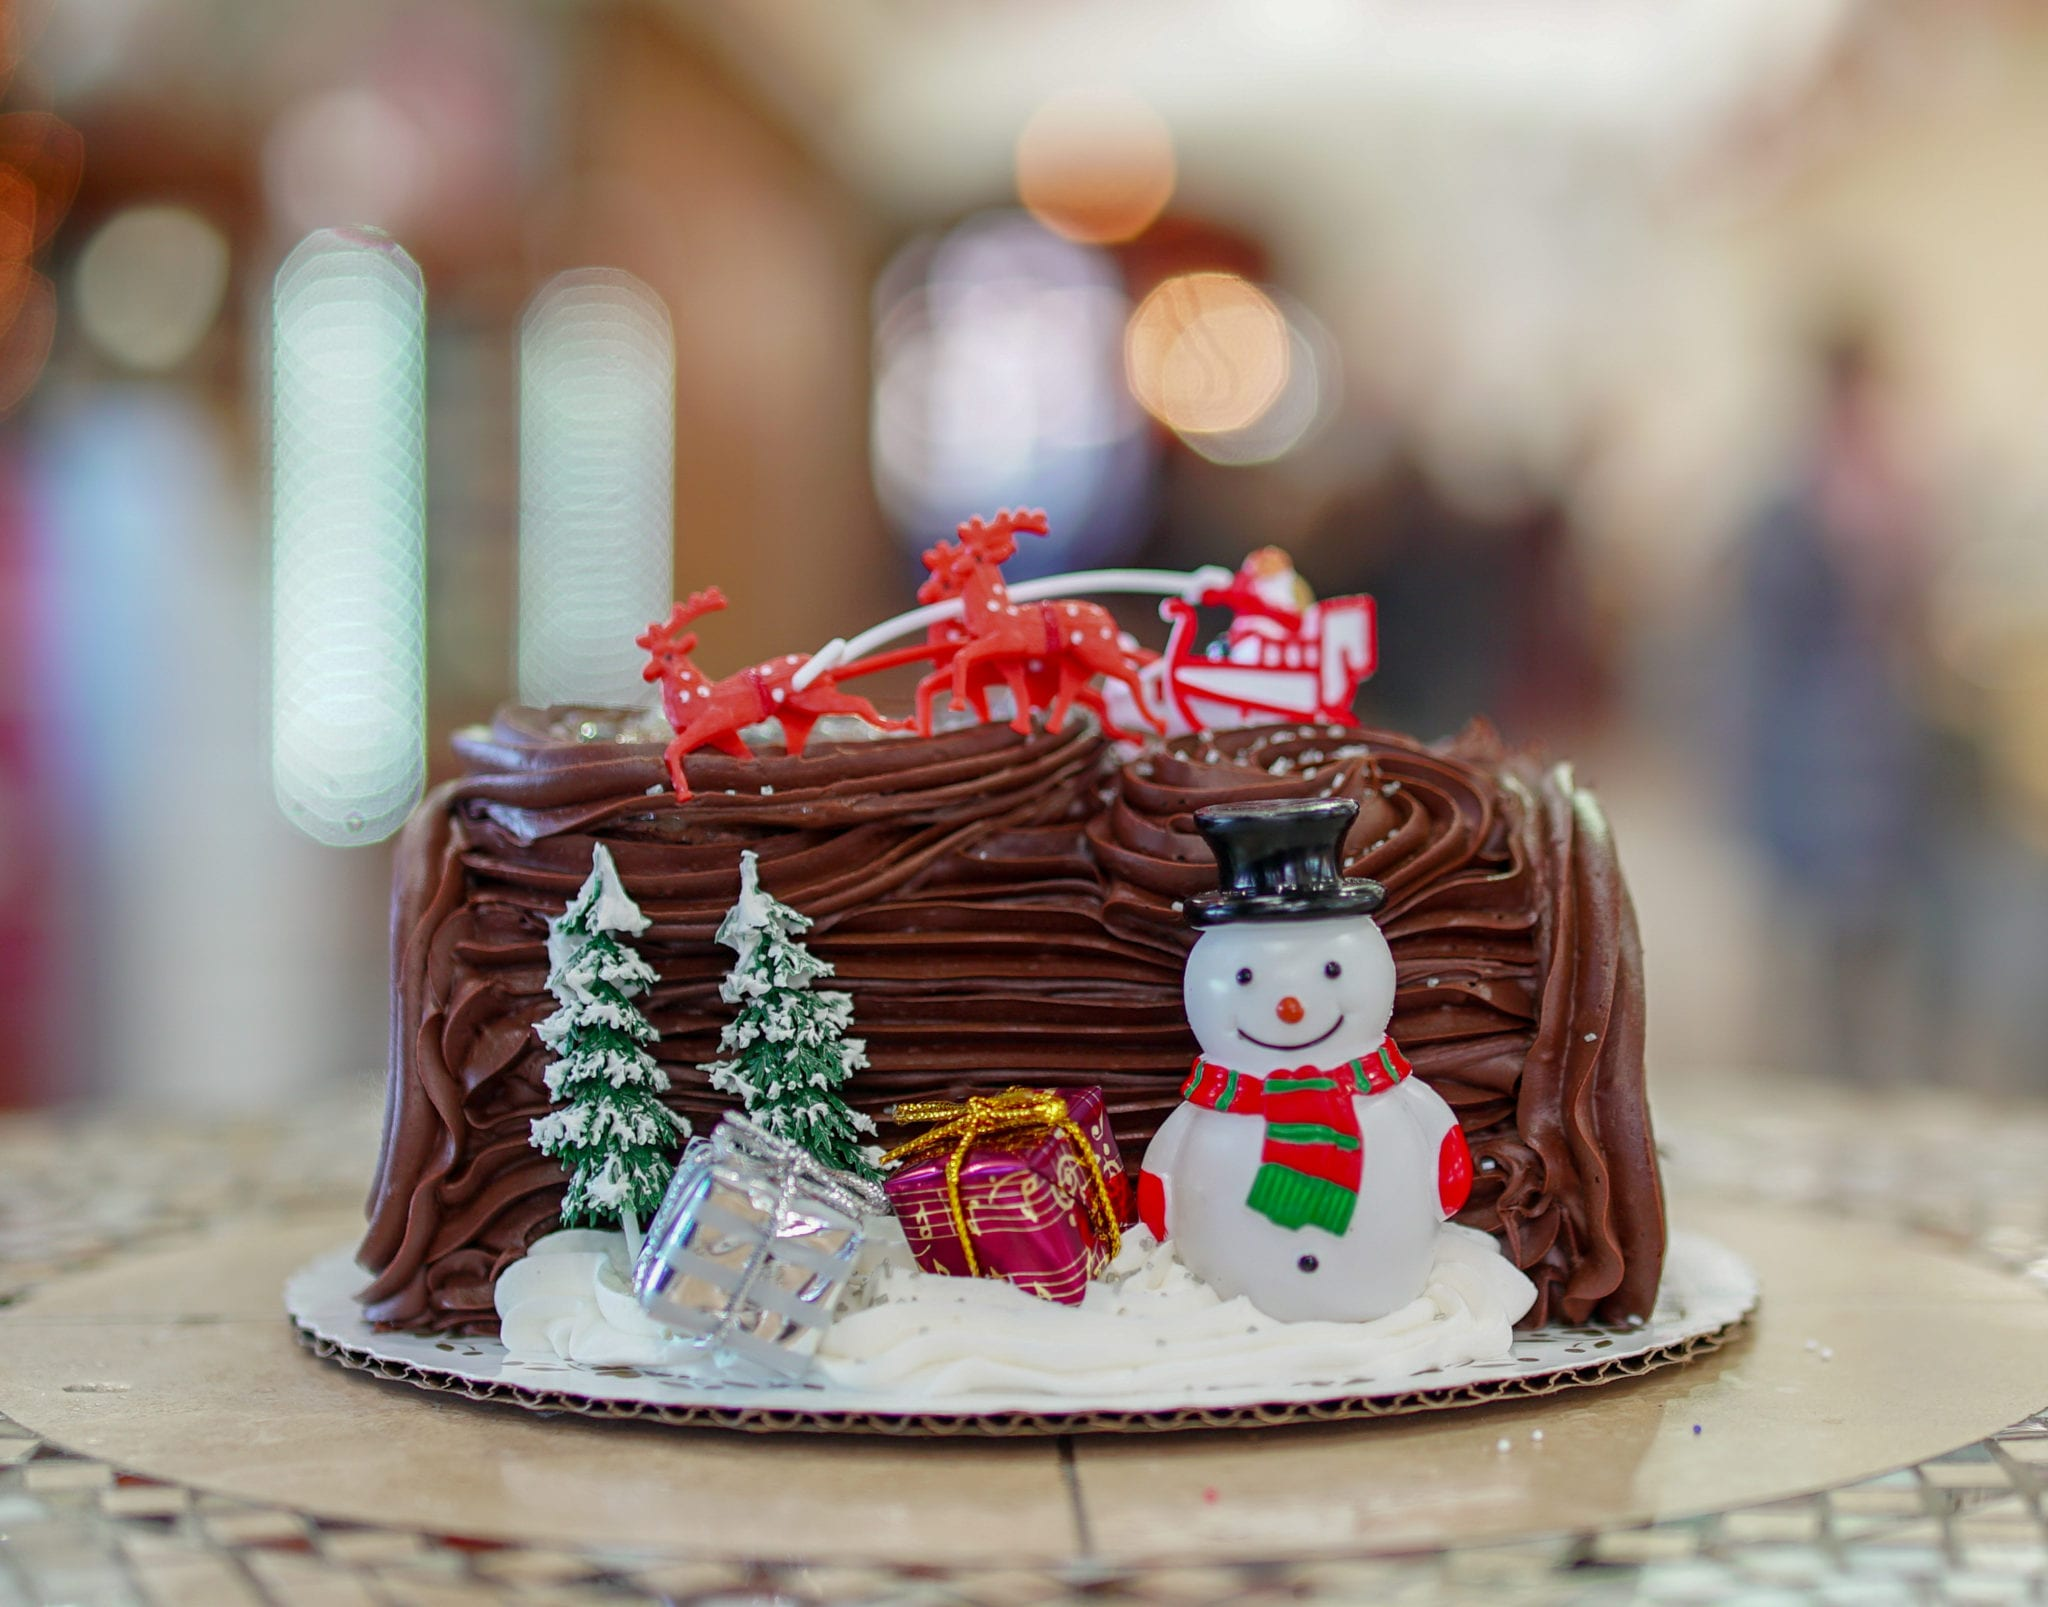 Calandra's Bakery's Holiday Baked Goods